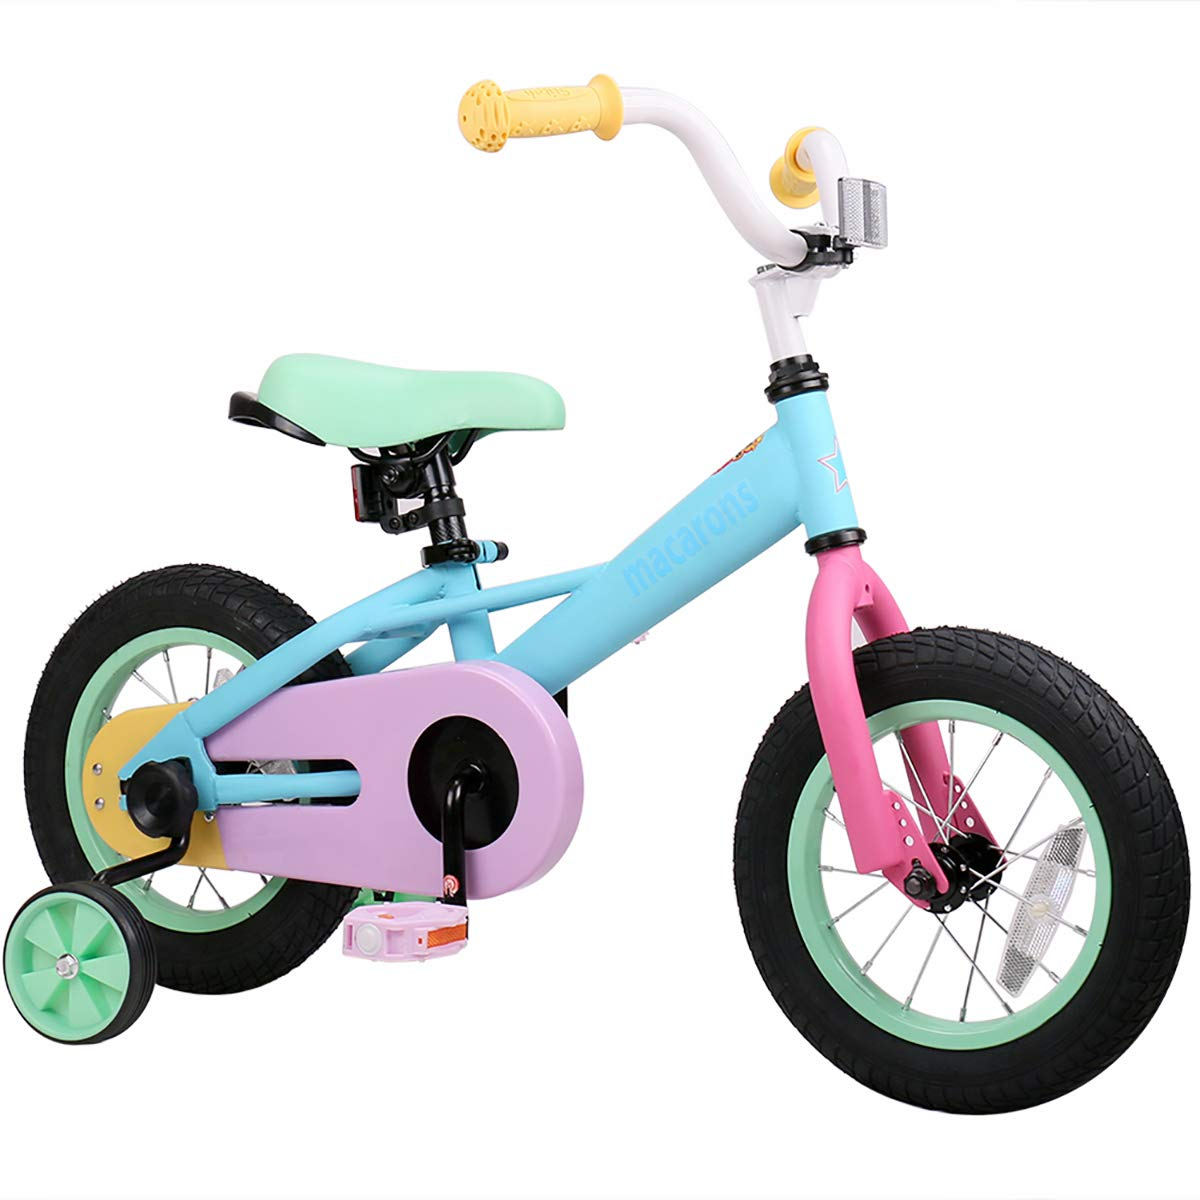 JOYSTAR 14 Inch Kids Bike for 3 4 5 Years Girls, Child Bicycle with Training Wheels & Coaster Brake for 3-5 Years Kids, 85% Assembled (14 inch)